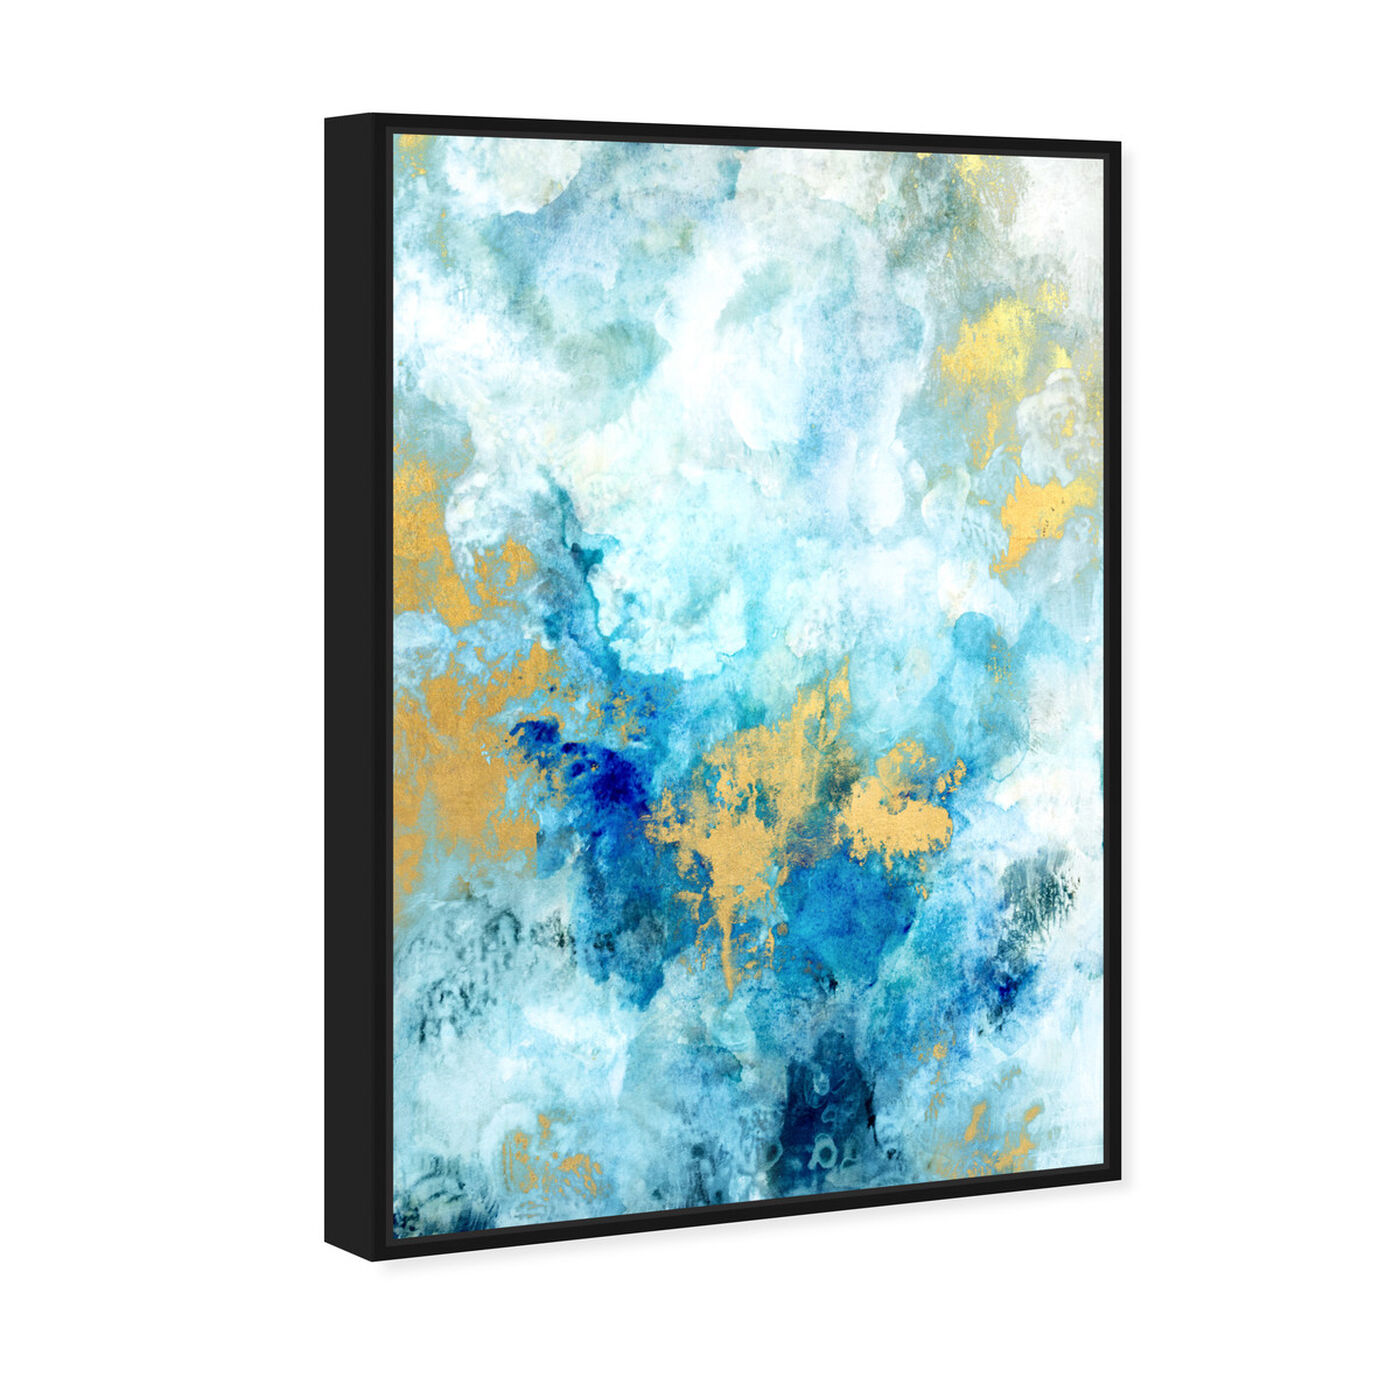 Angled view of Snowy Gold featuring abstract and paint art.